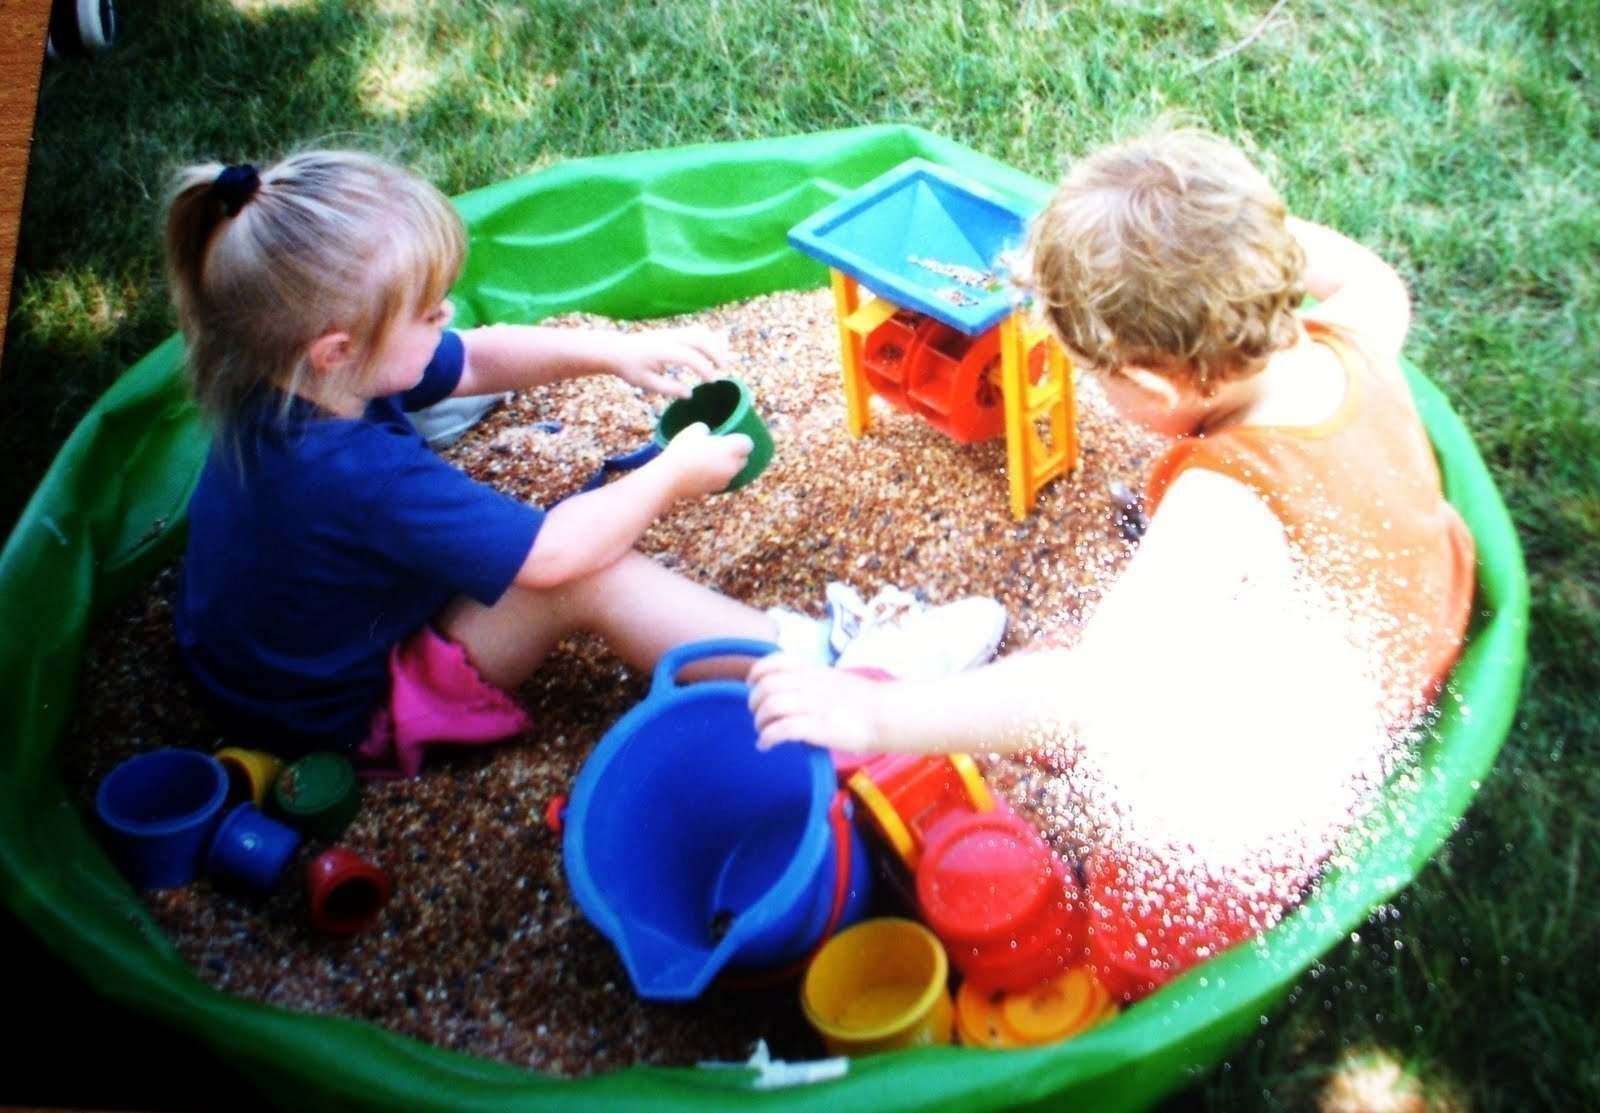 Examplary Free Tutorial A Sandbox Full Video Online Two Kids A Sandbox Link S On How To Make A Sandboxes Birdseed How To Make A Sandboxes Construction On Cut Two Kids baby Two Kids In A Sandbox